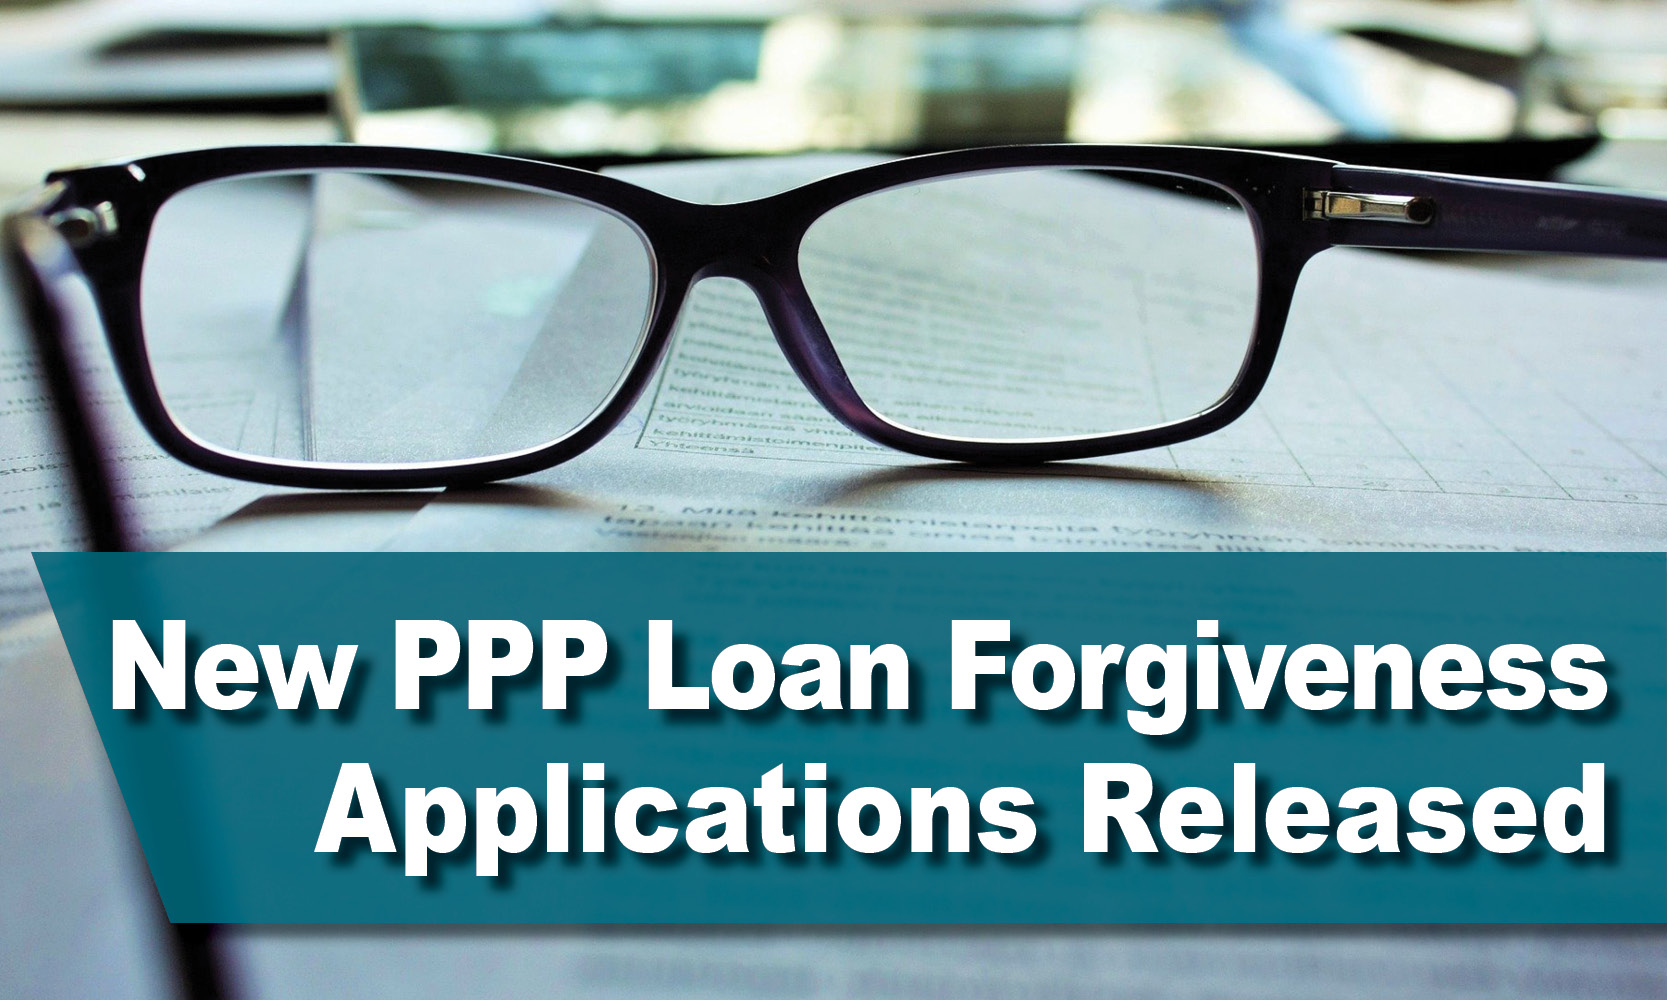 New PPP Loan Forgiveness Application